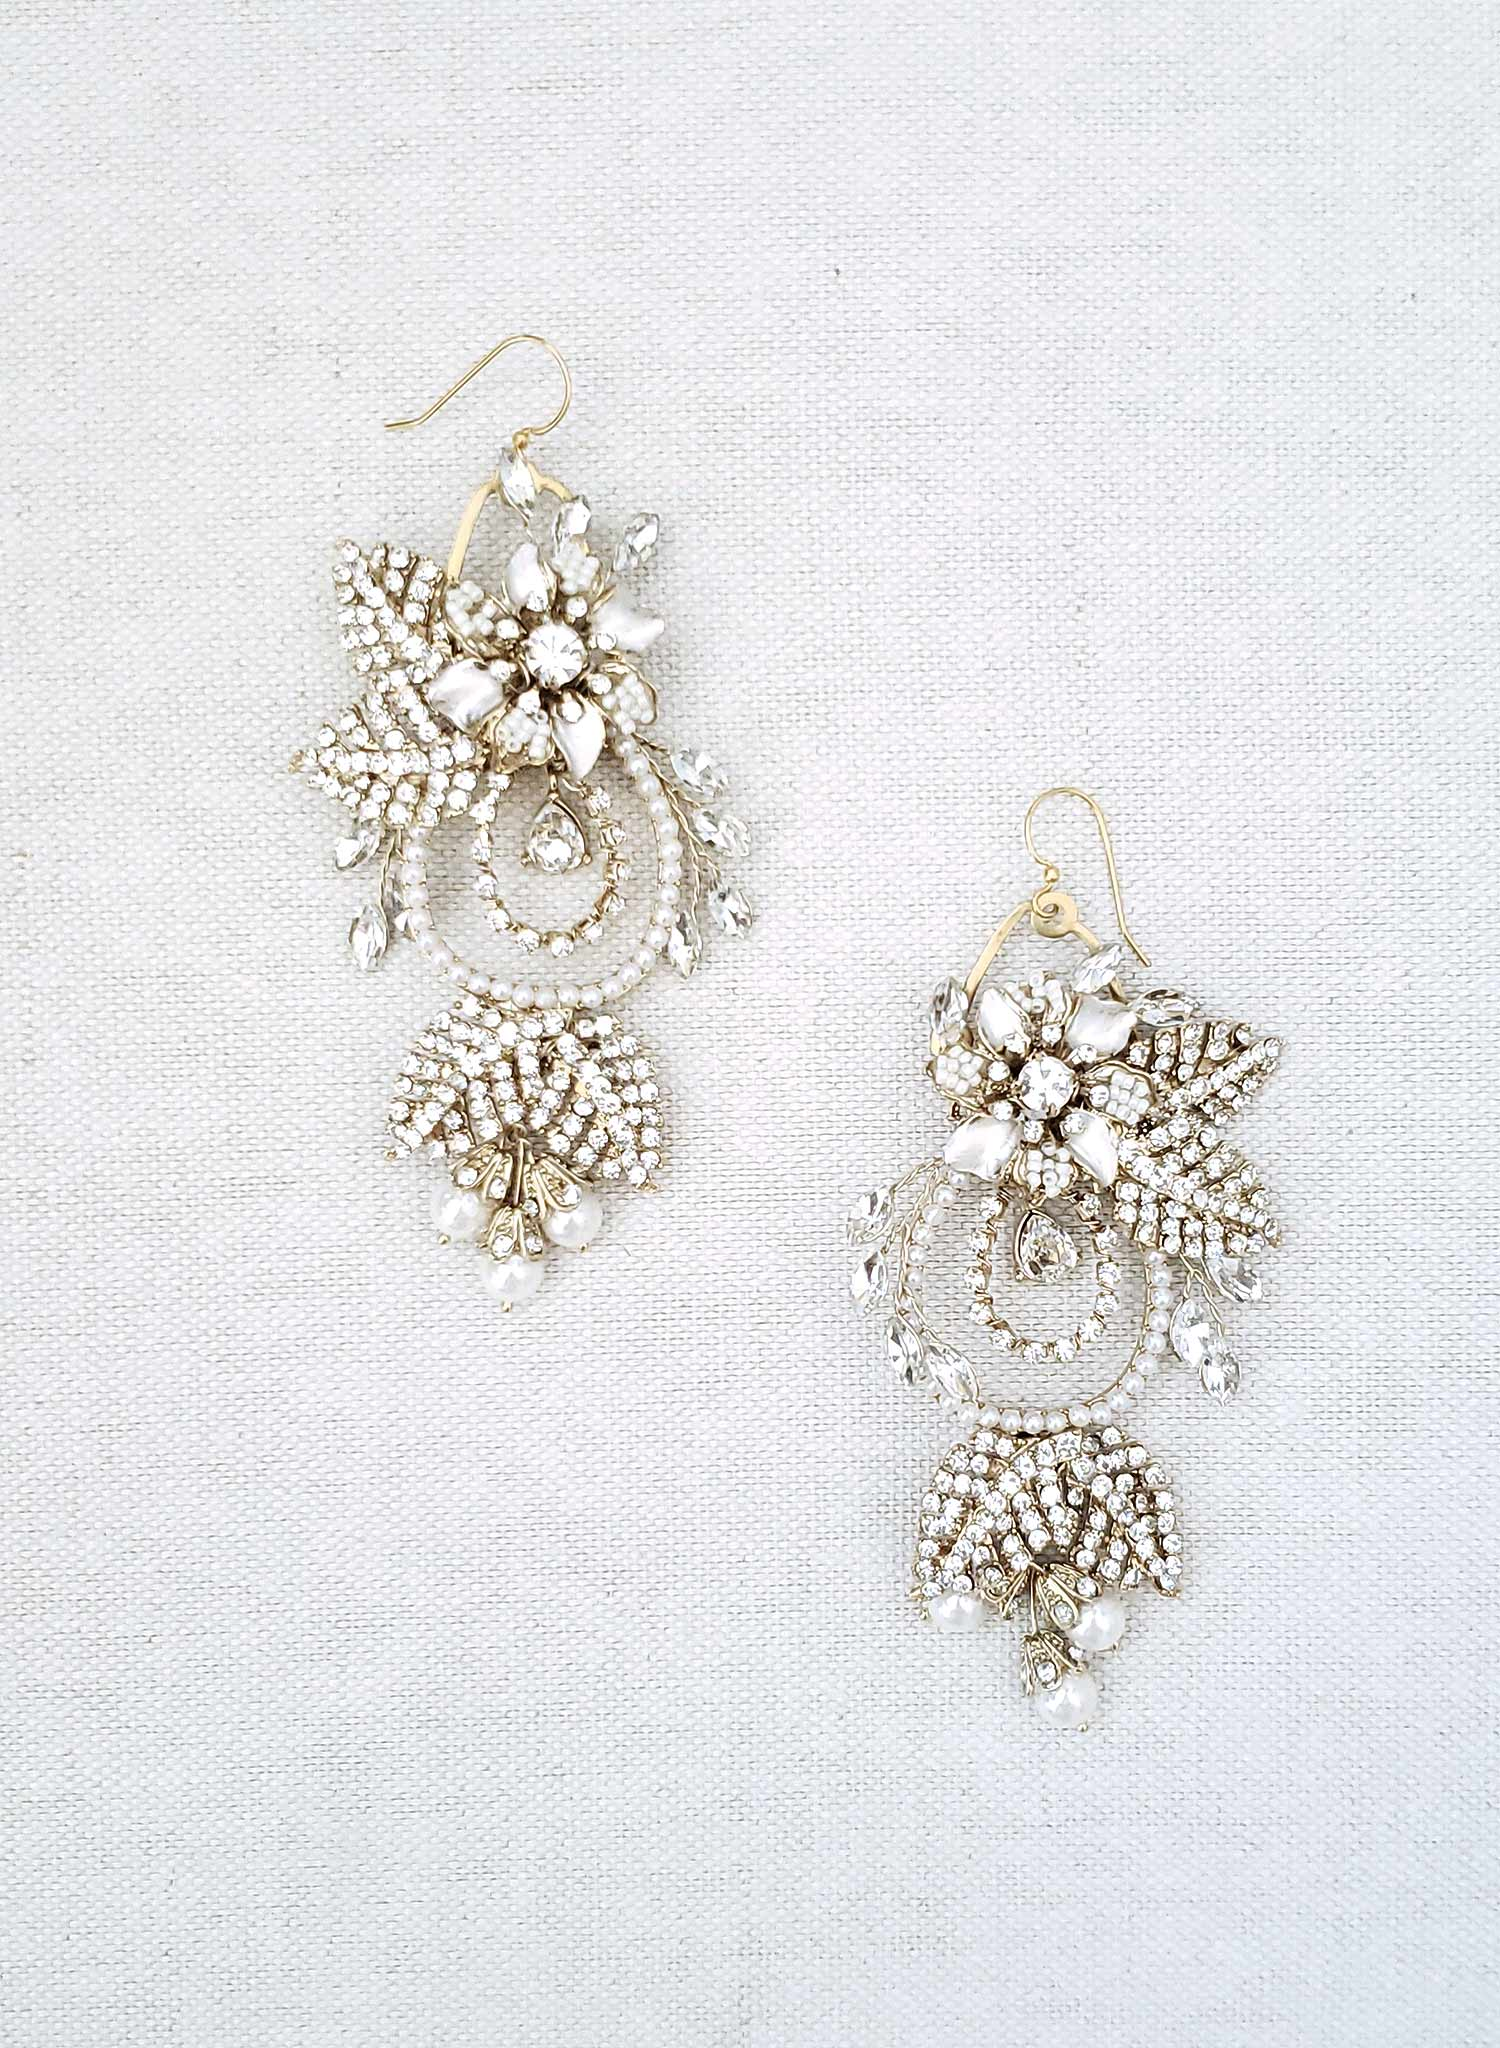 Regal gold flower and leaf chandelier earrings- Style #910